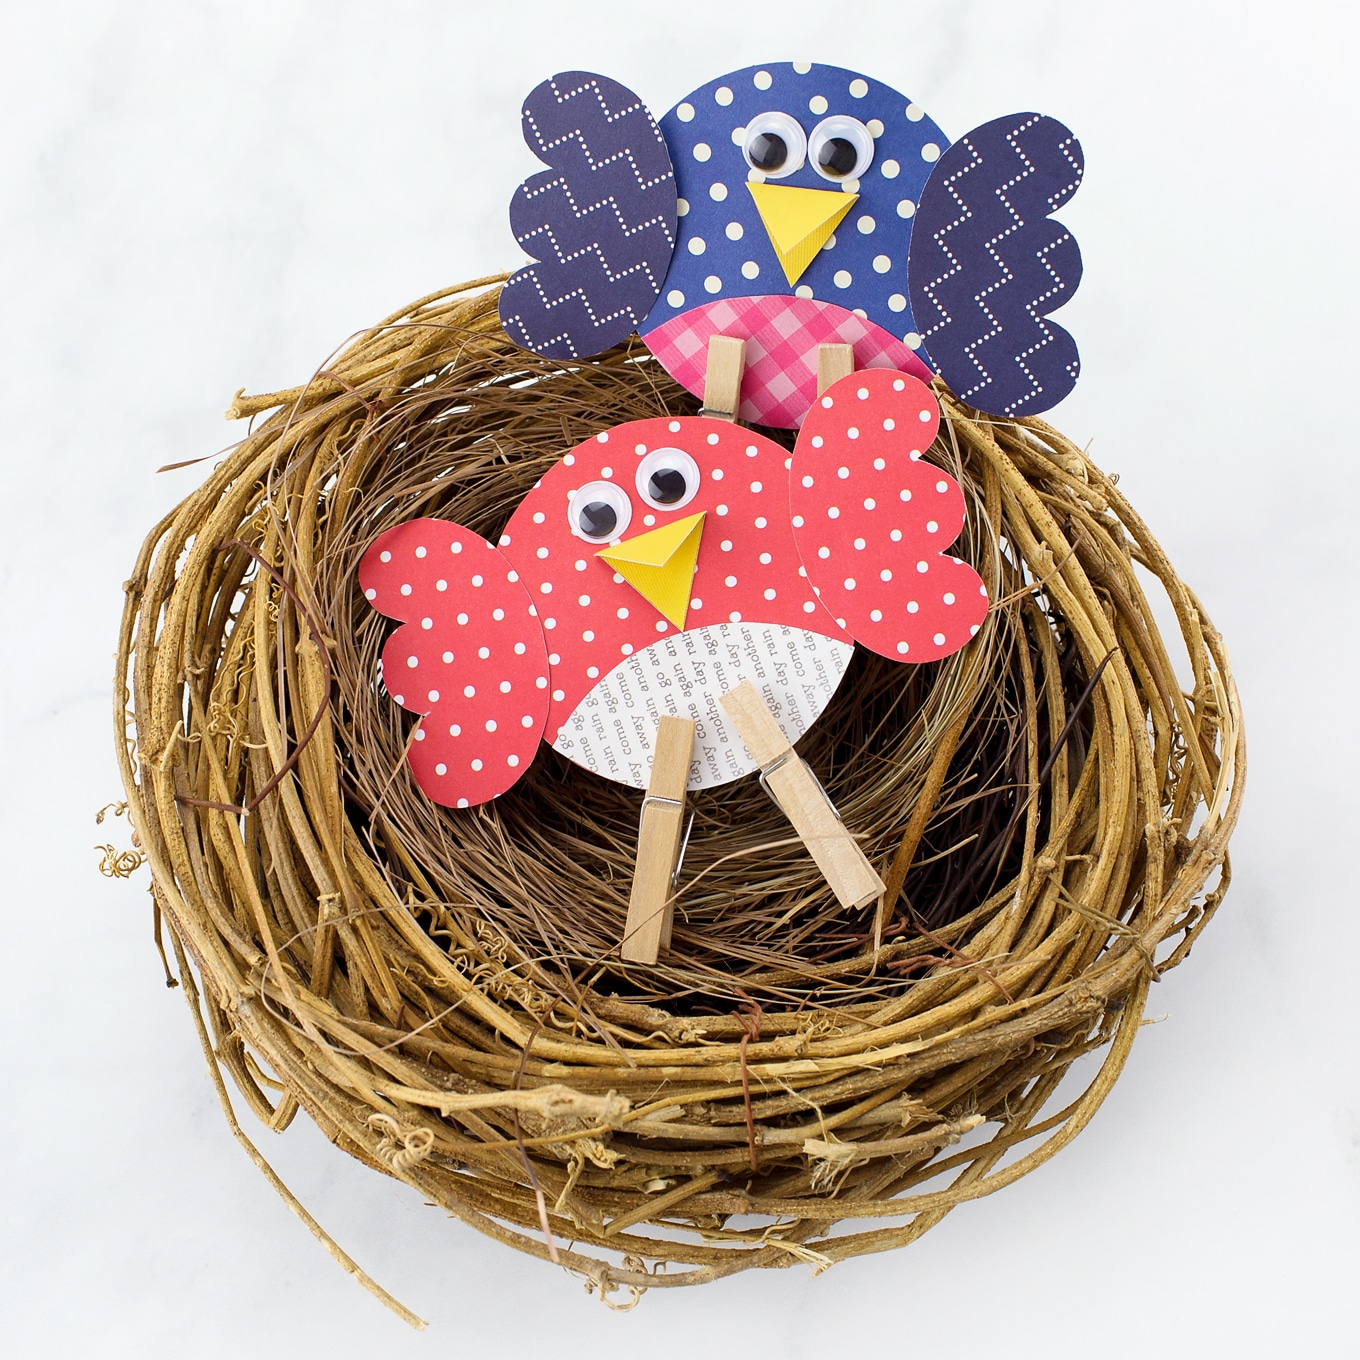 Paper Birds in a Nest